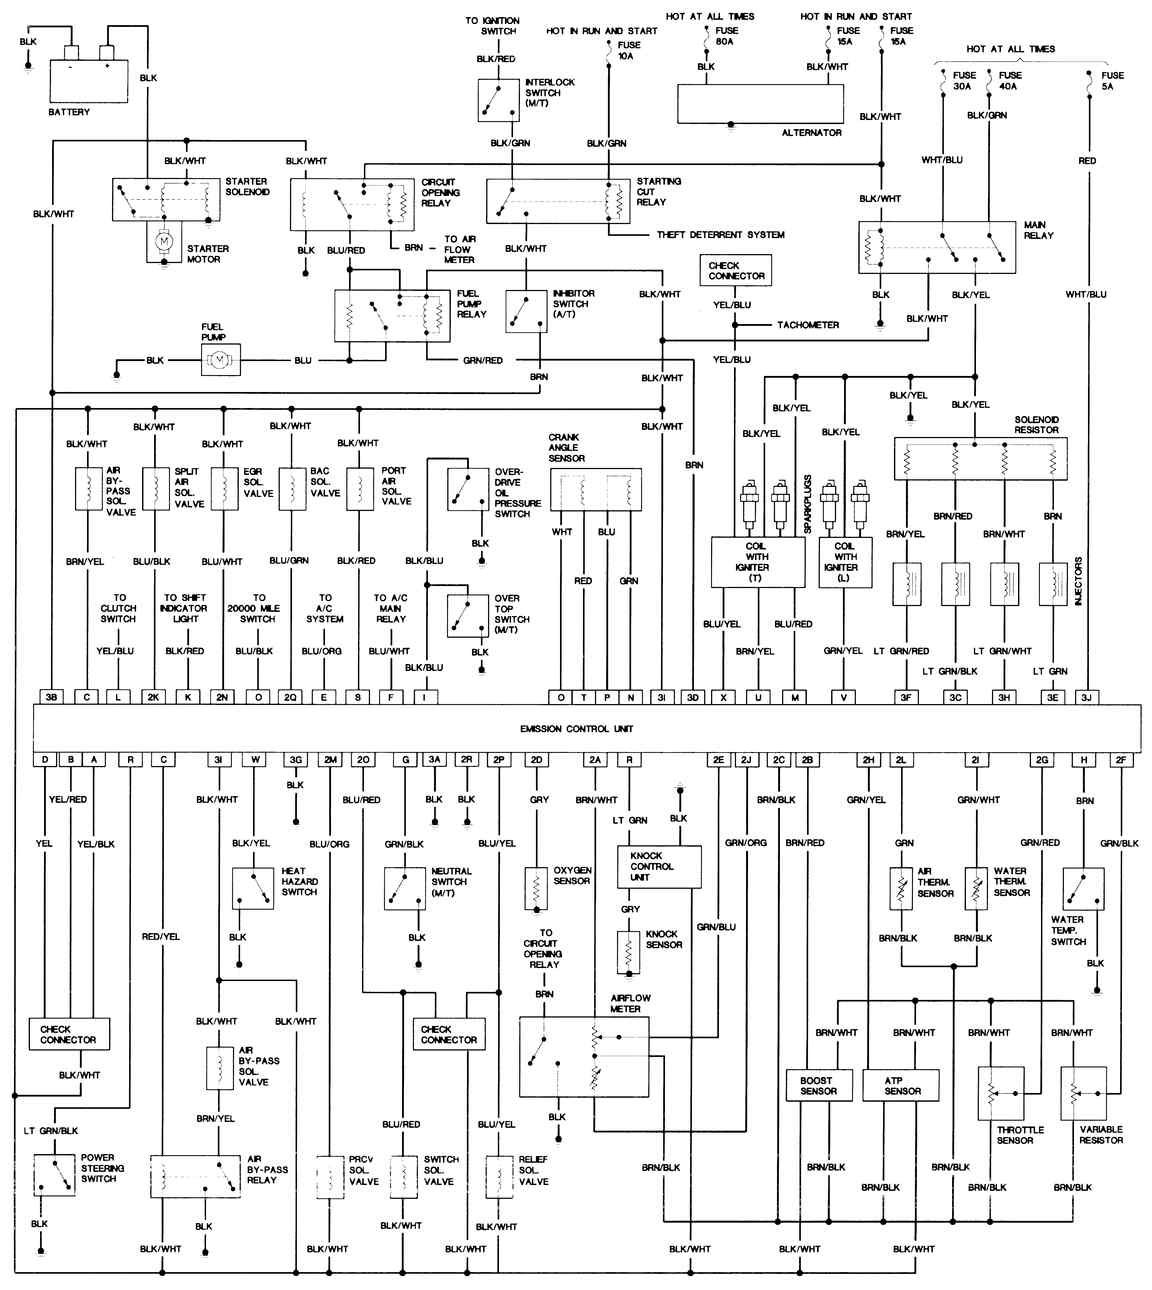 85816143l wiring diagrams 1987 mazda rx7 wiring diagram at soozxer.org